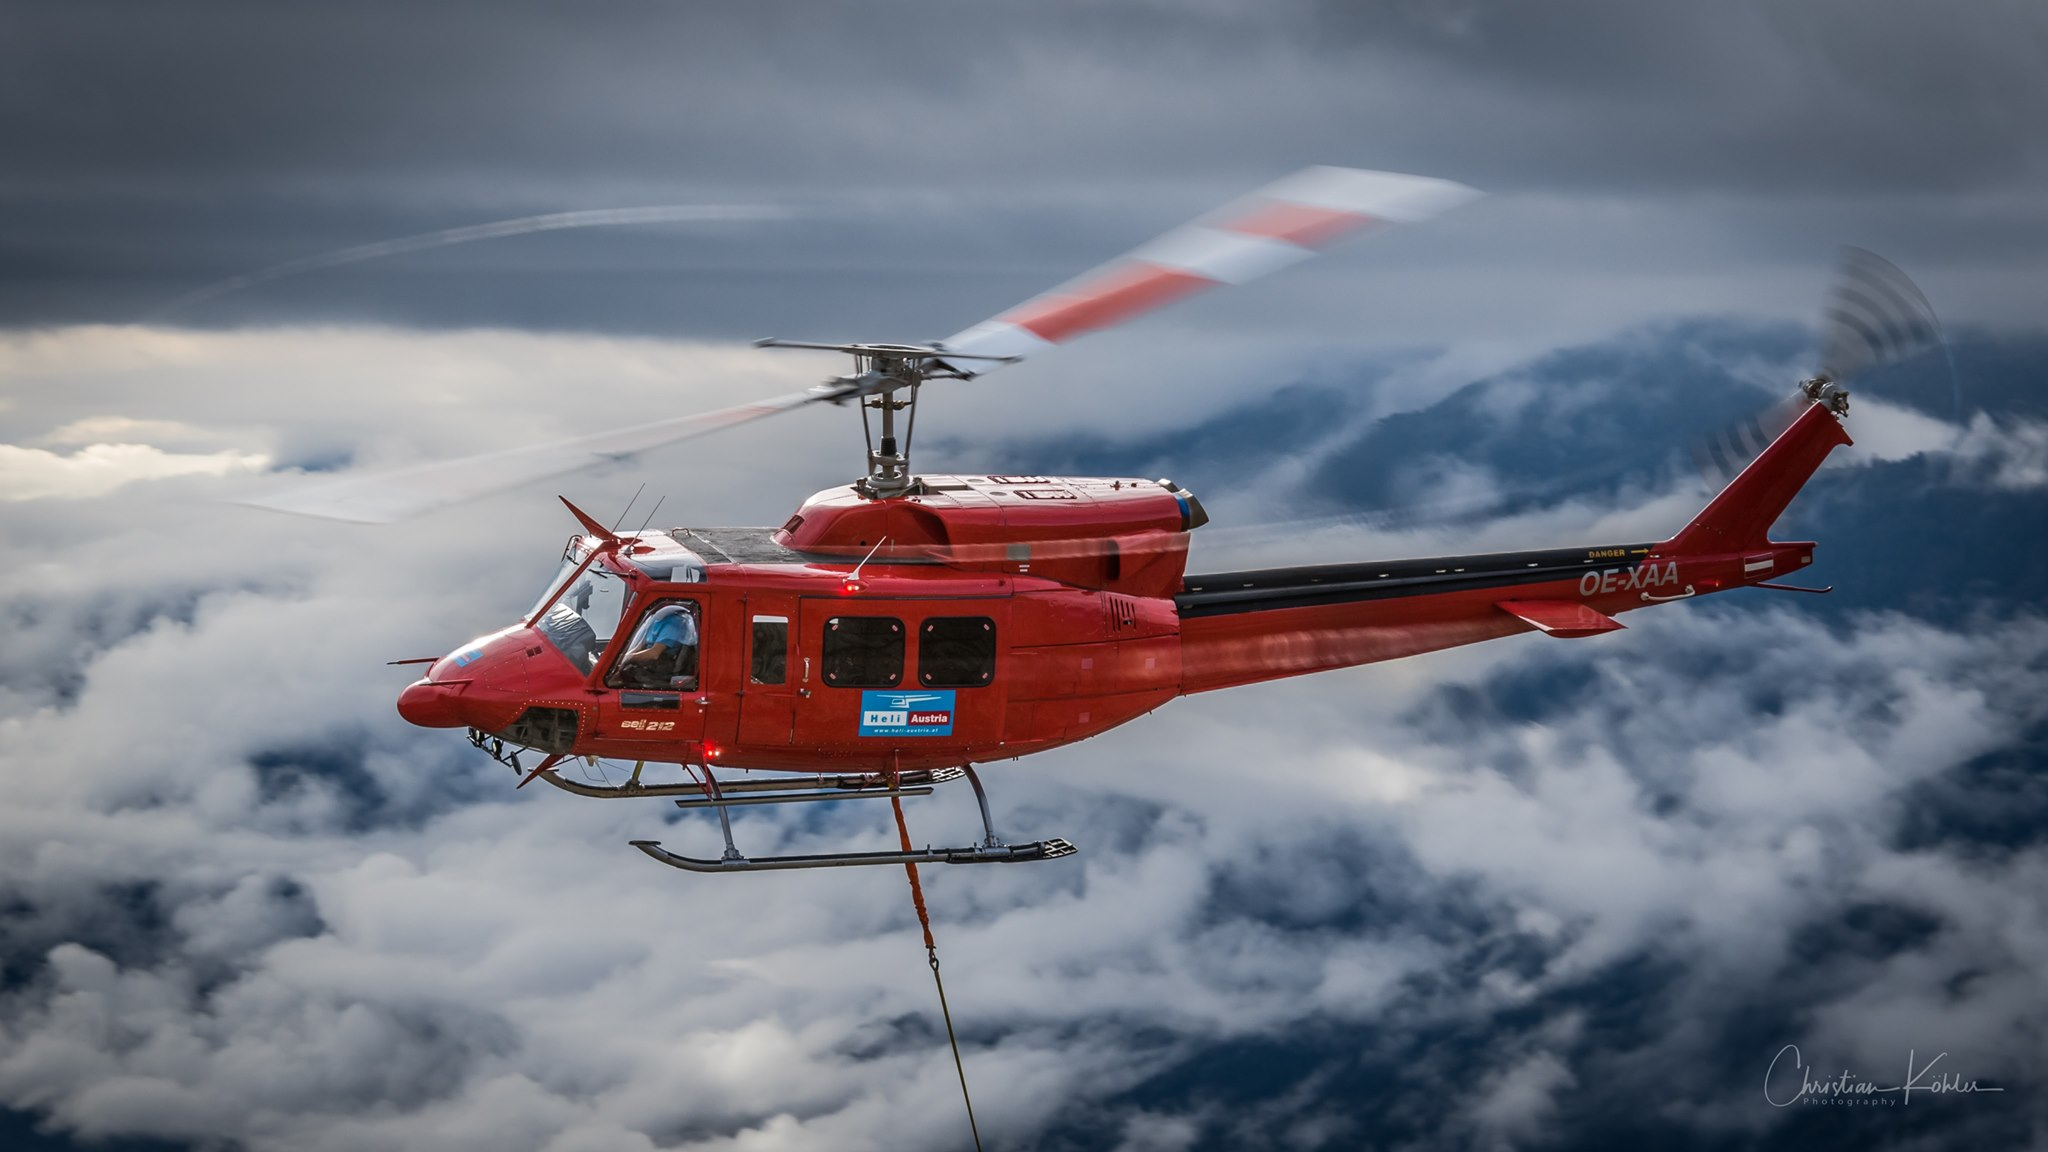 A Bell 212 above the clouds. Photo submitted by Christian Koehler